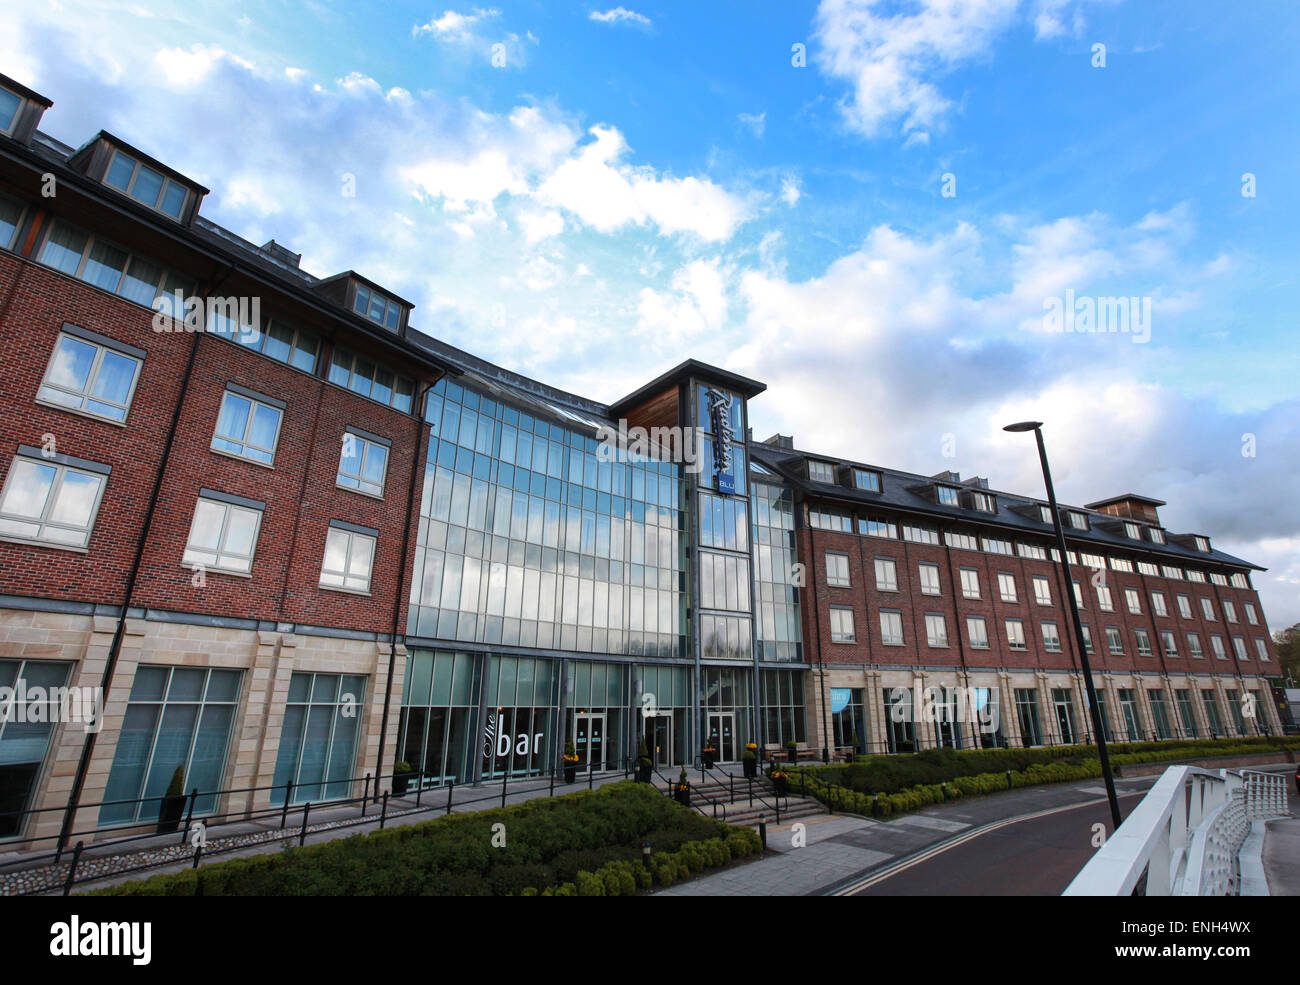 Radisson Blu Hotel Durham exterior Durham city centre Stock Photo